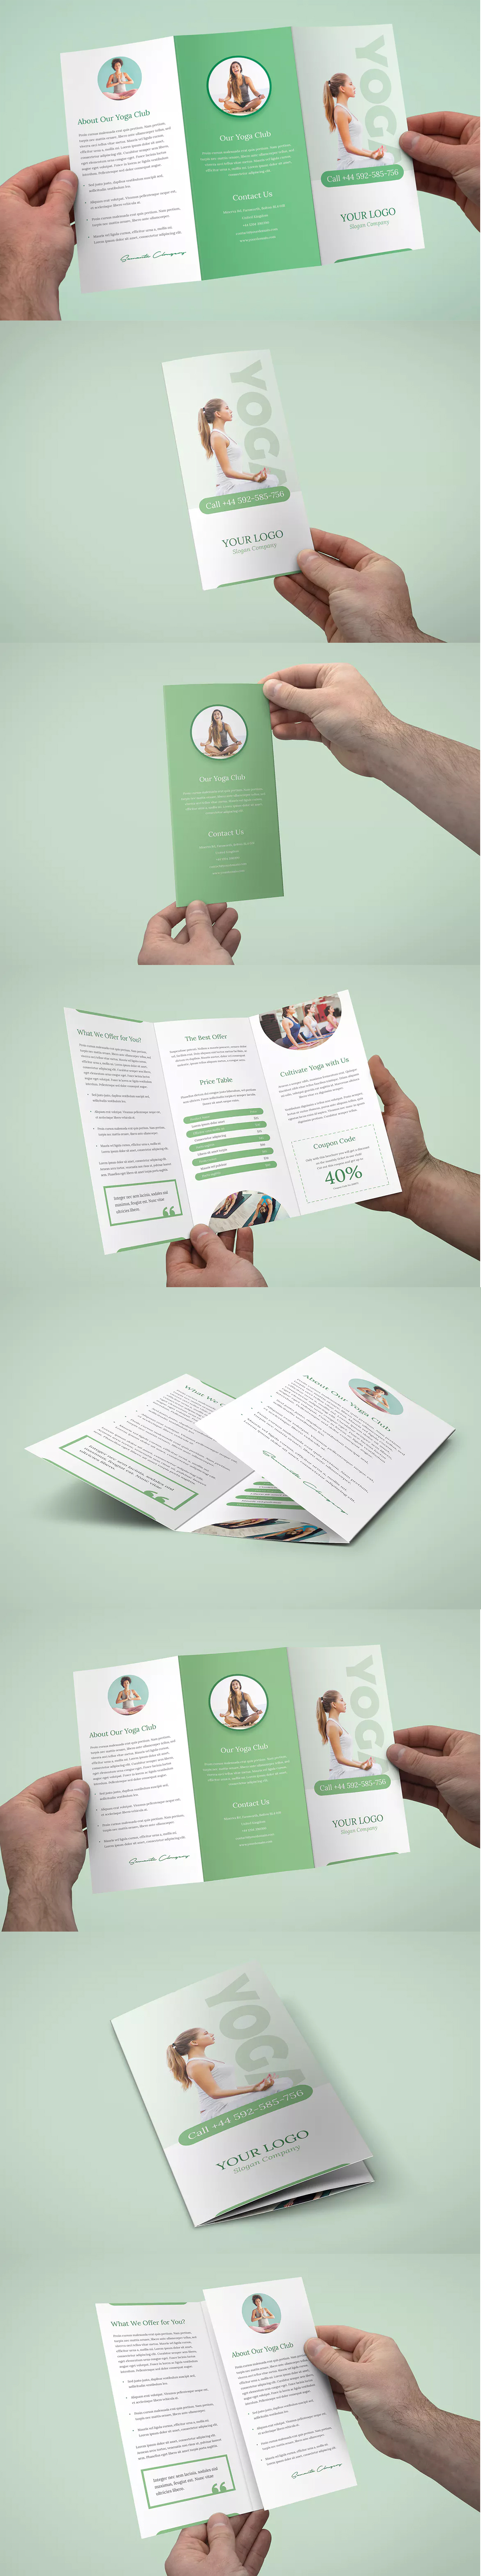 Yoga Tri-Fold Brochure Template PSD - A4 and US Letter Size ...